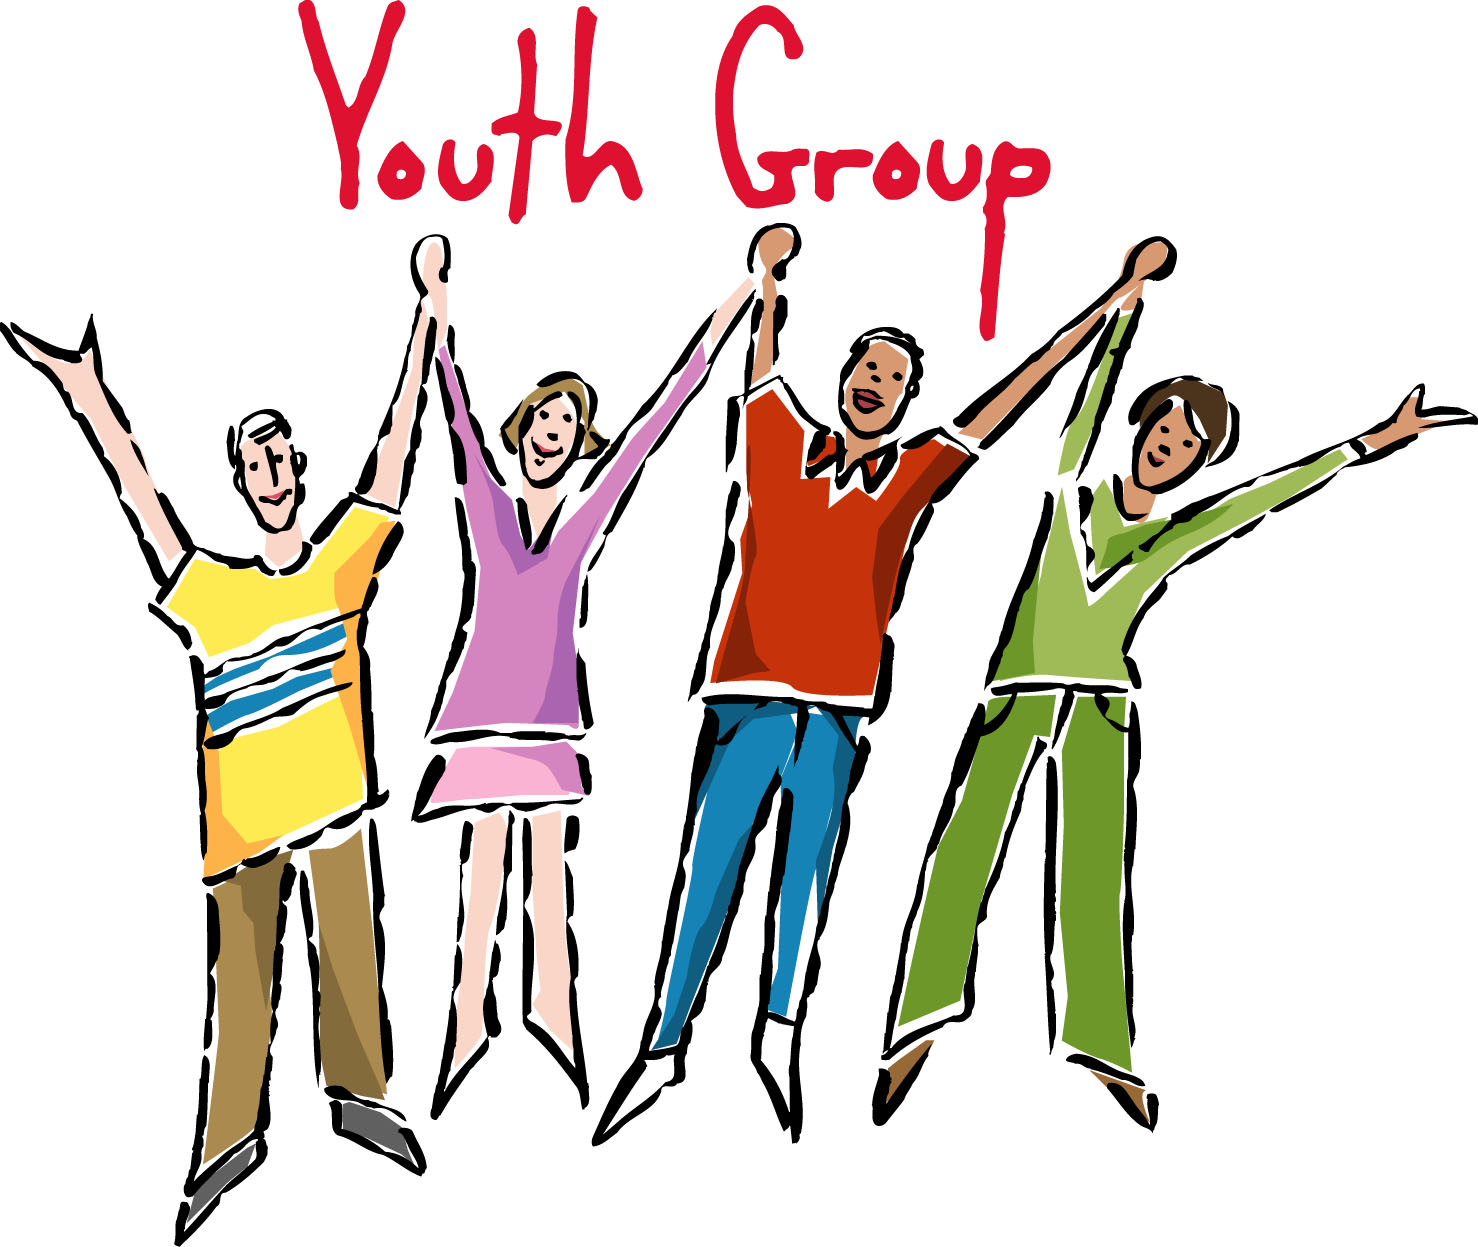 Free activities cliparts download. Cookout clipart church youth group